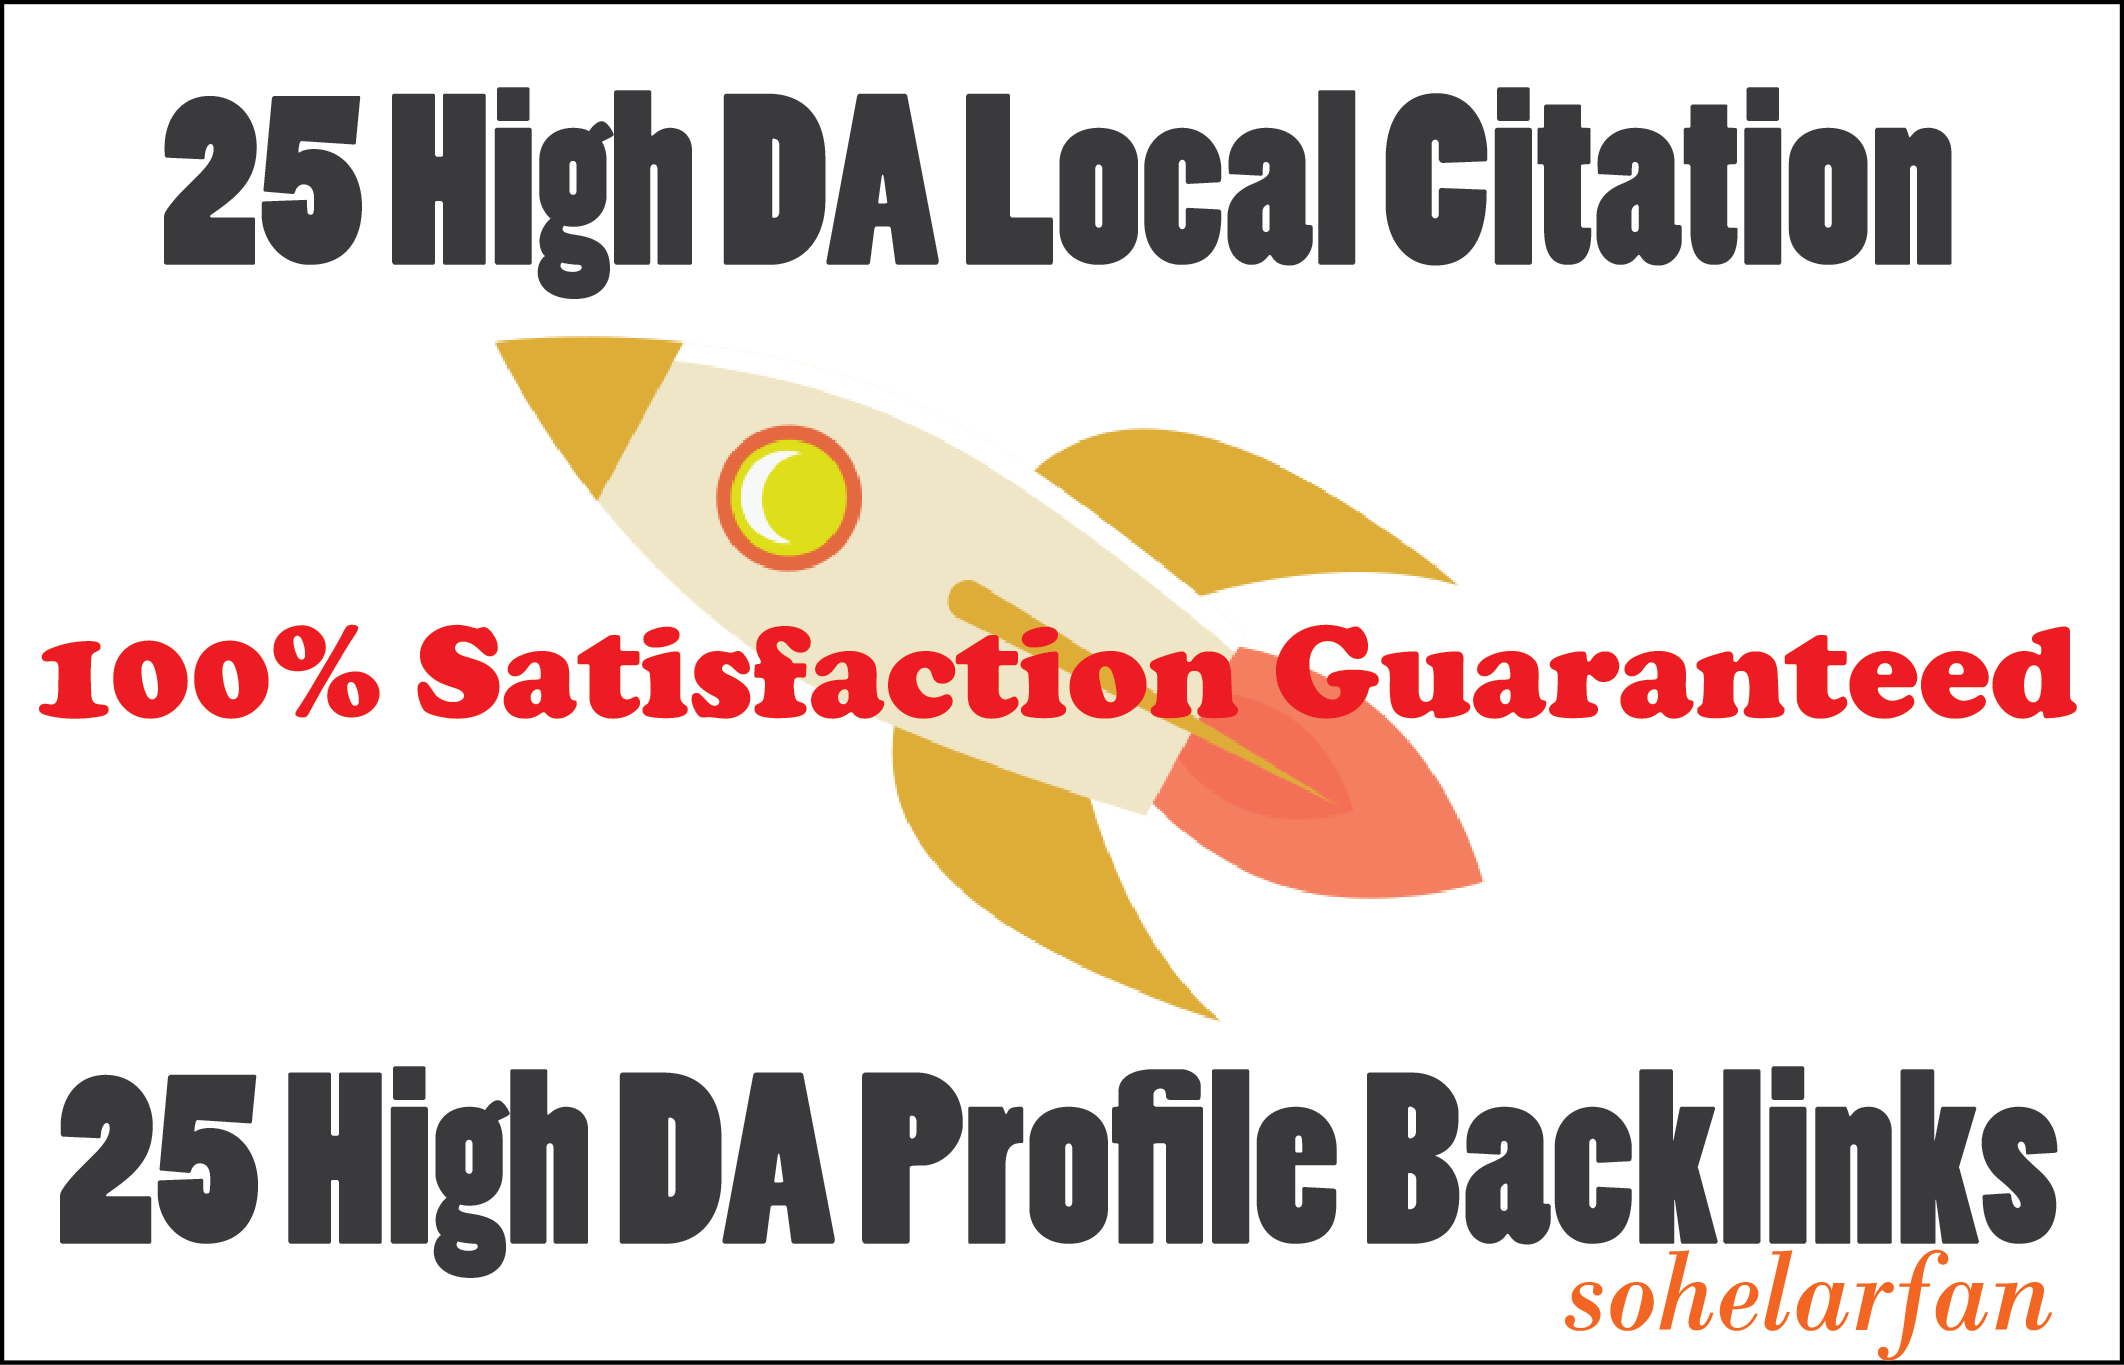 25 High DA Local Citation and 25 High DA Profile Backlinks only 5 Dollars for any country